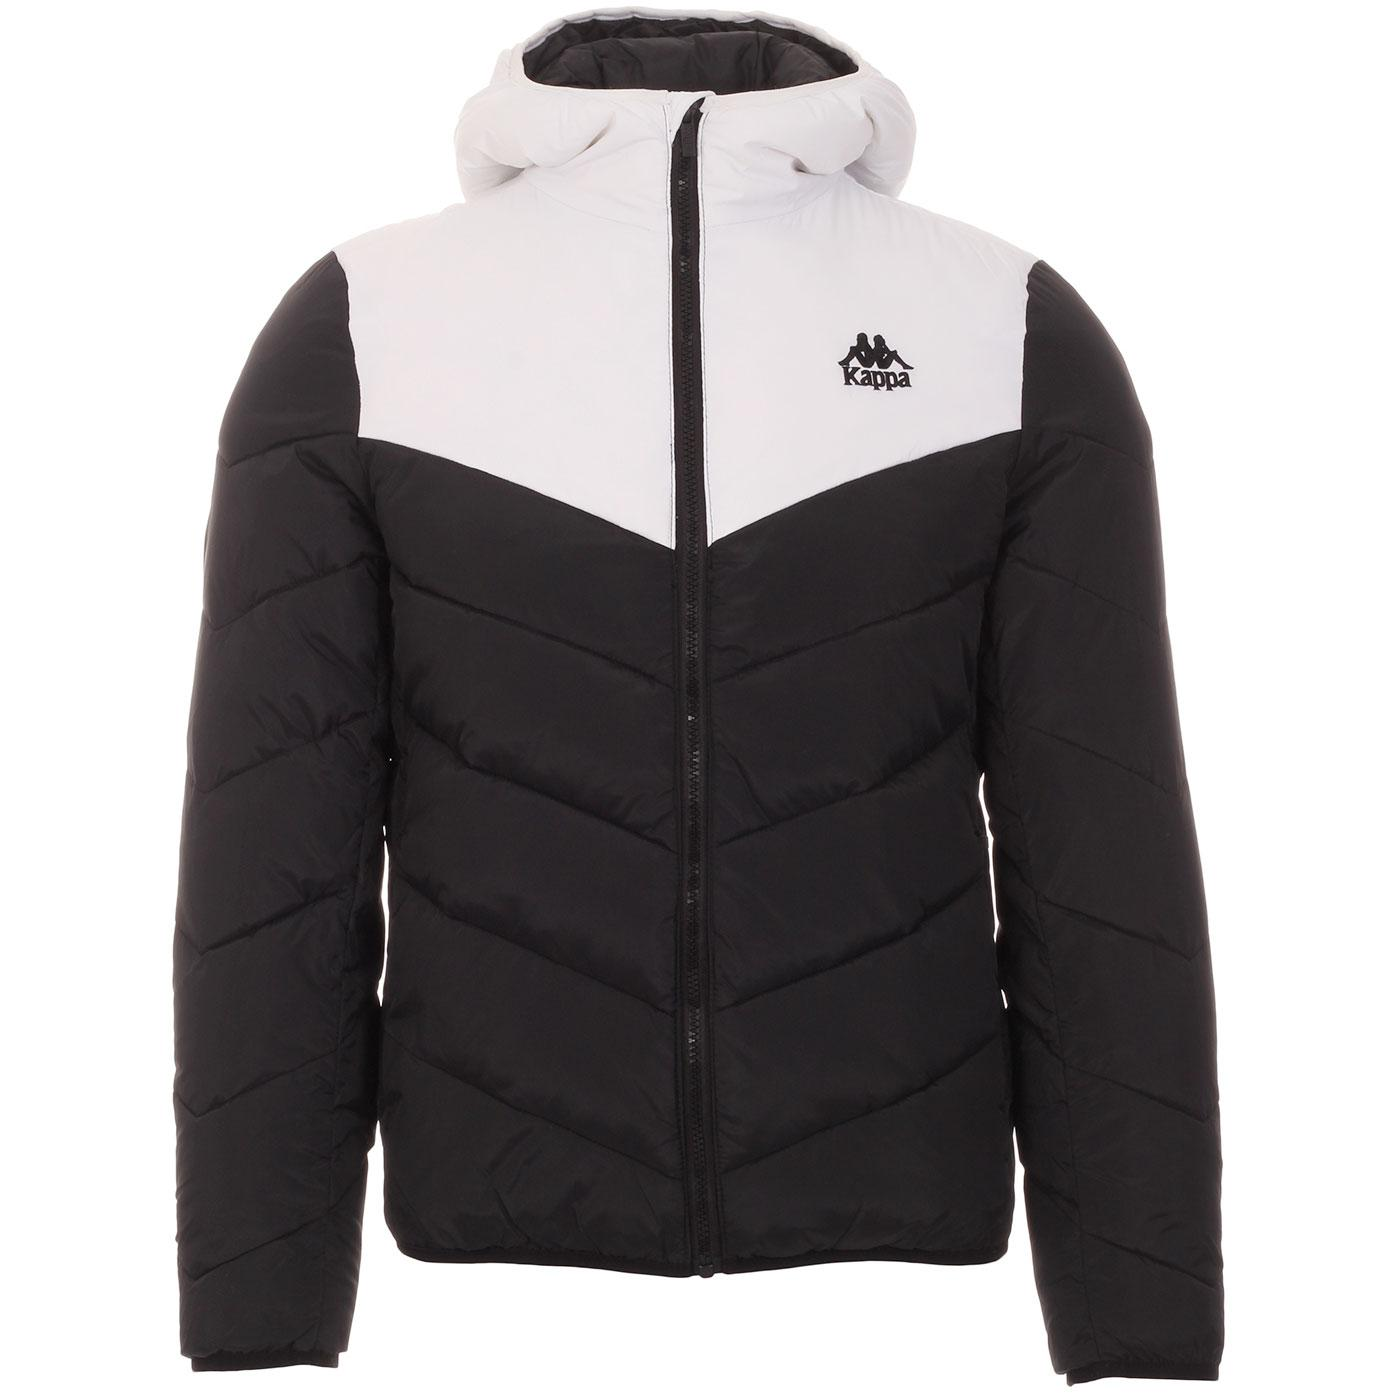 Amarit KAPPA Retro 80s Quilted Puffer Jacket (B/W)